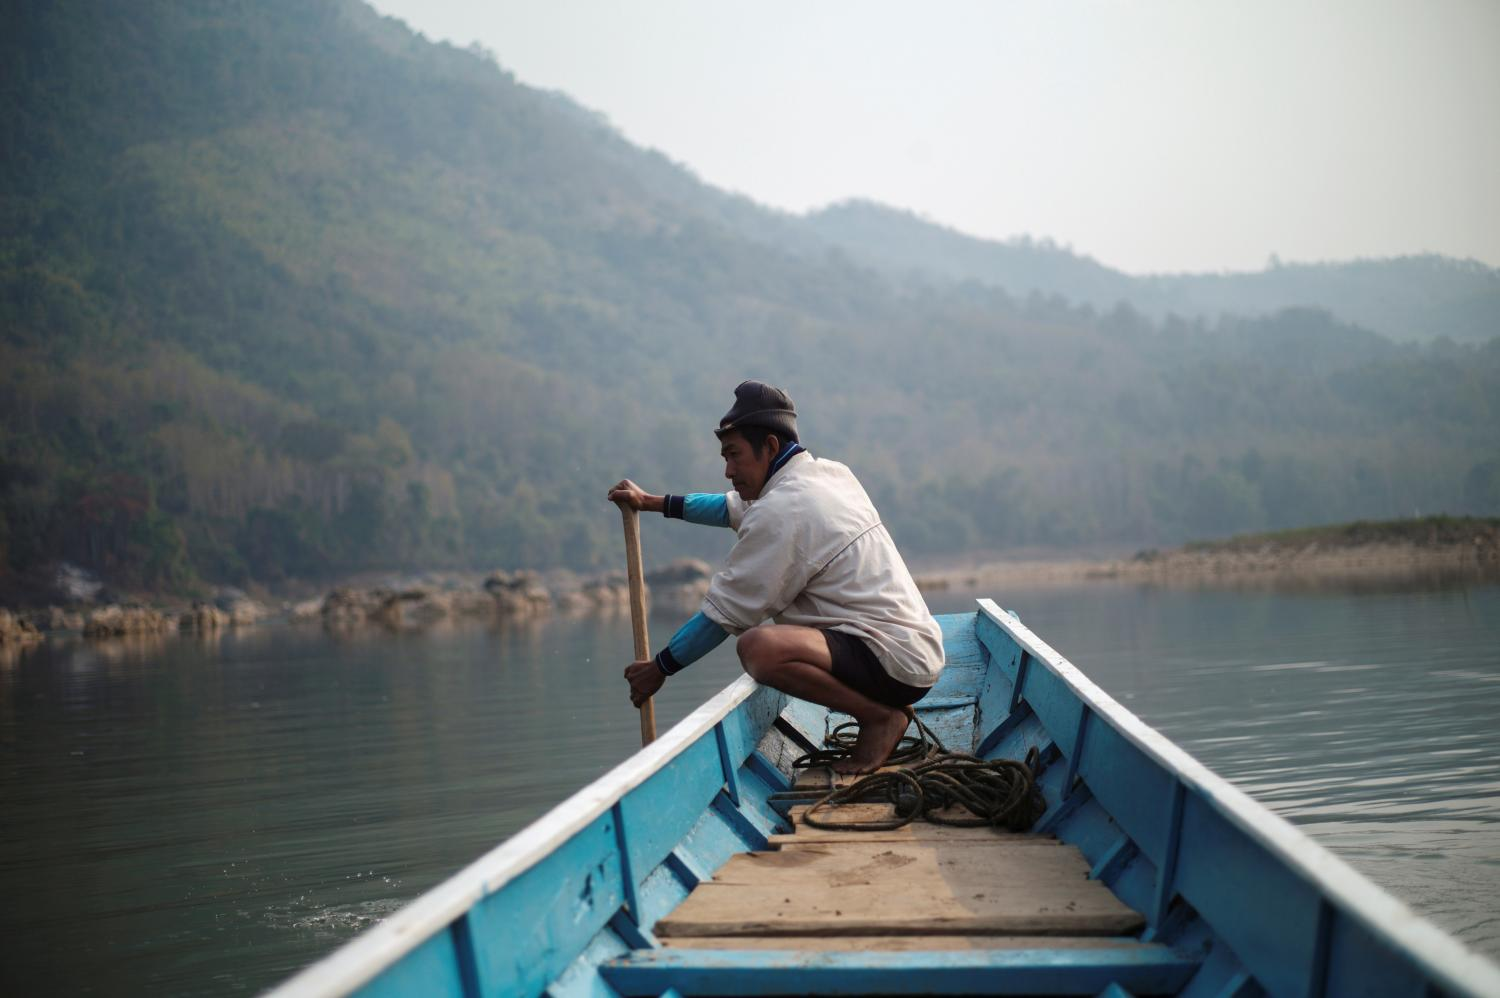 In this file photo from February, a villager steers a boat where the future site of the Luang Prabang dam will be on the Mekong River in Laos. The Thai government and corporations are among the most vociferous proponents of dam projects in the country. (Photo: Reuters)